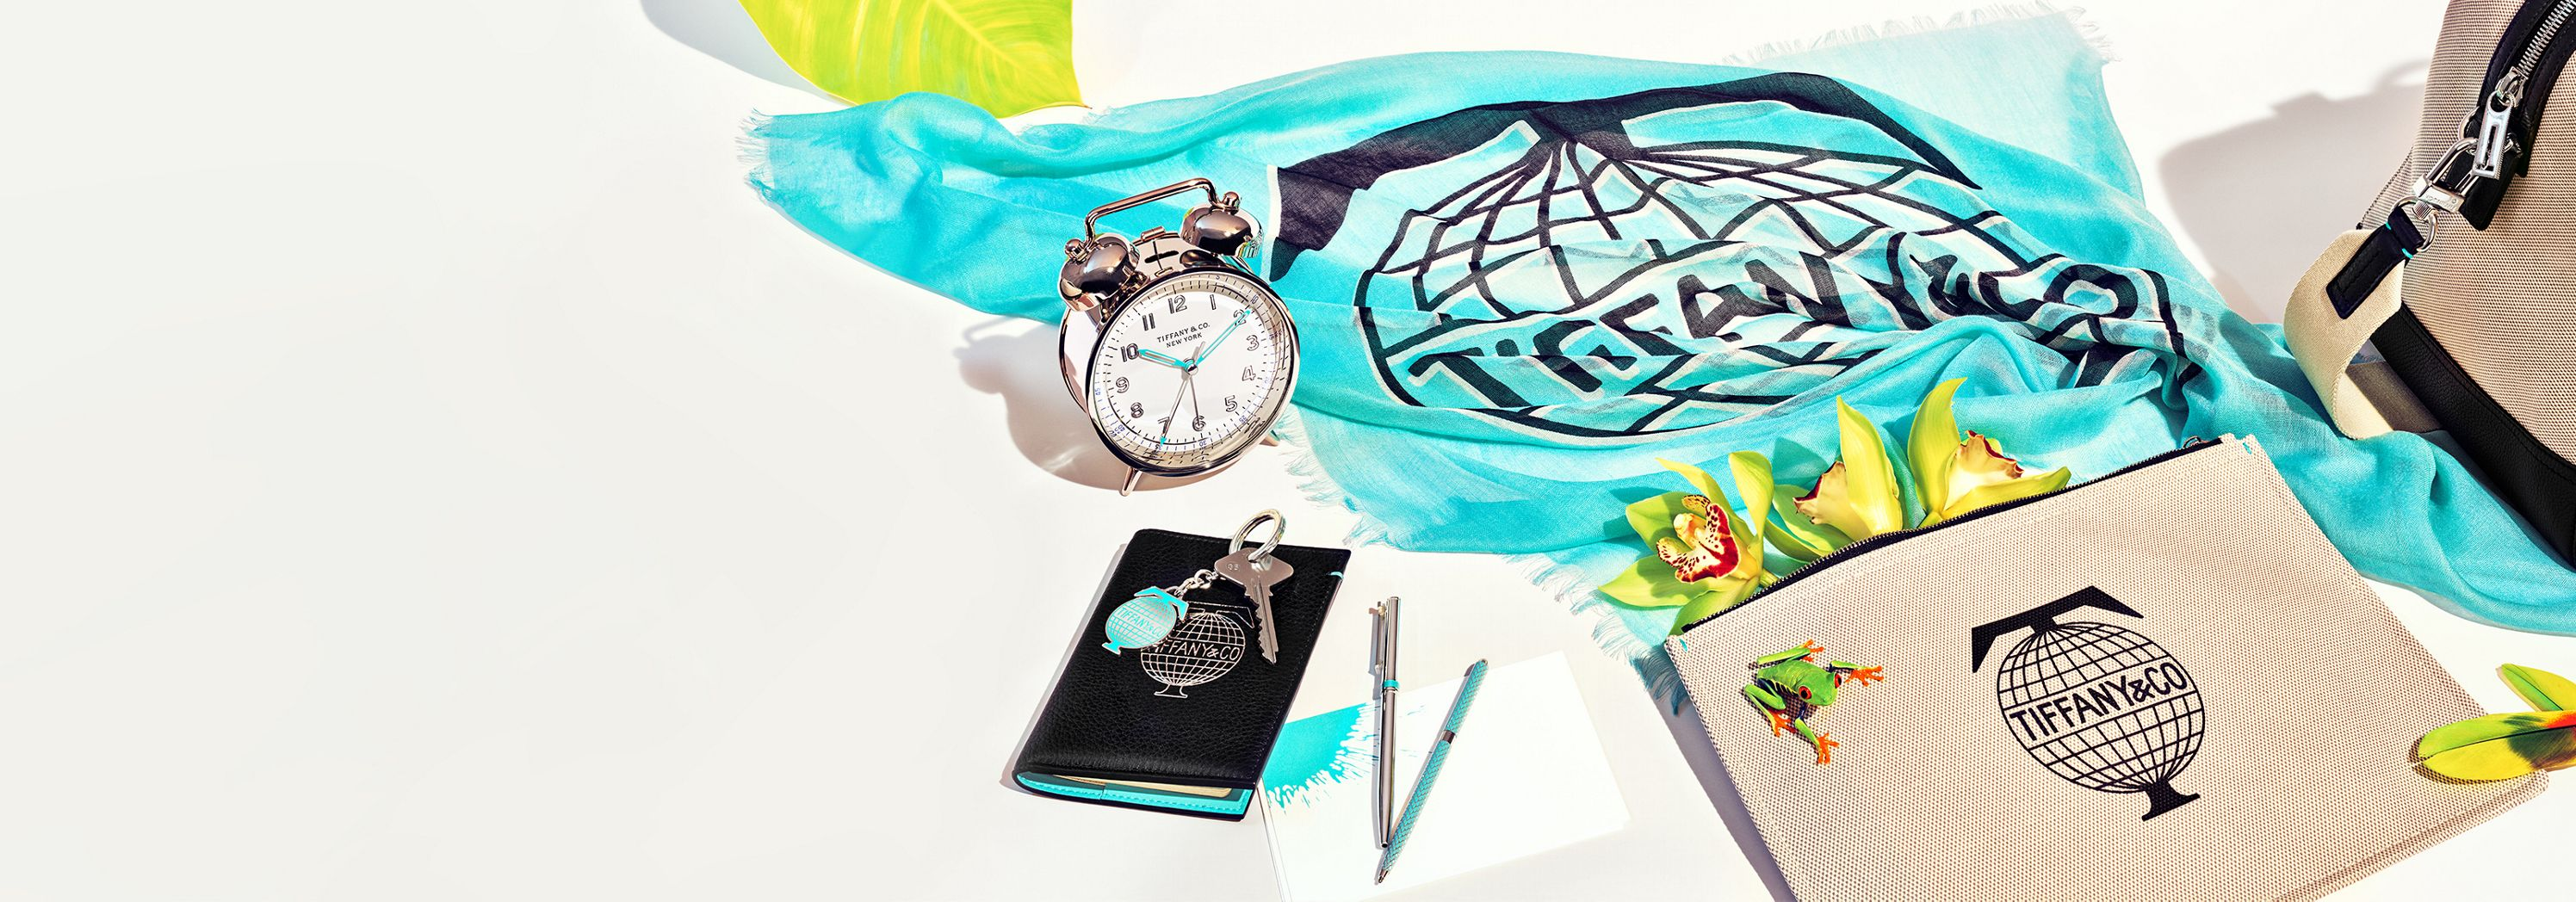 Tiffany & Co. Luxury Accessories